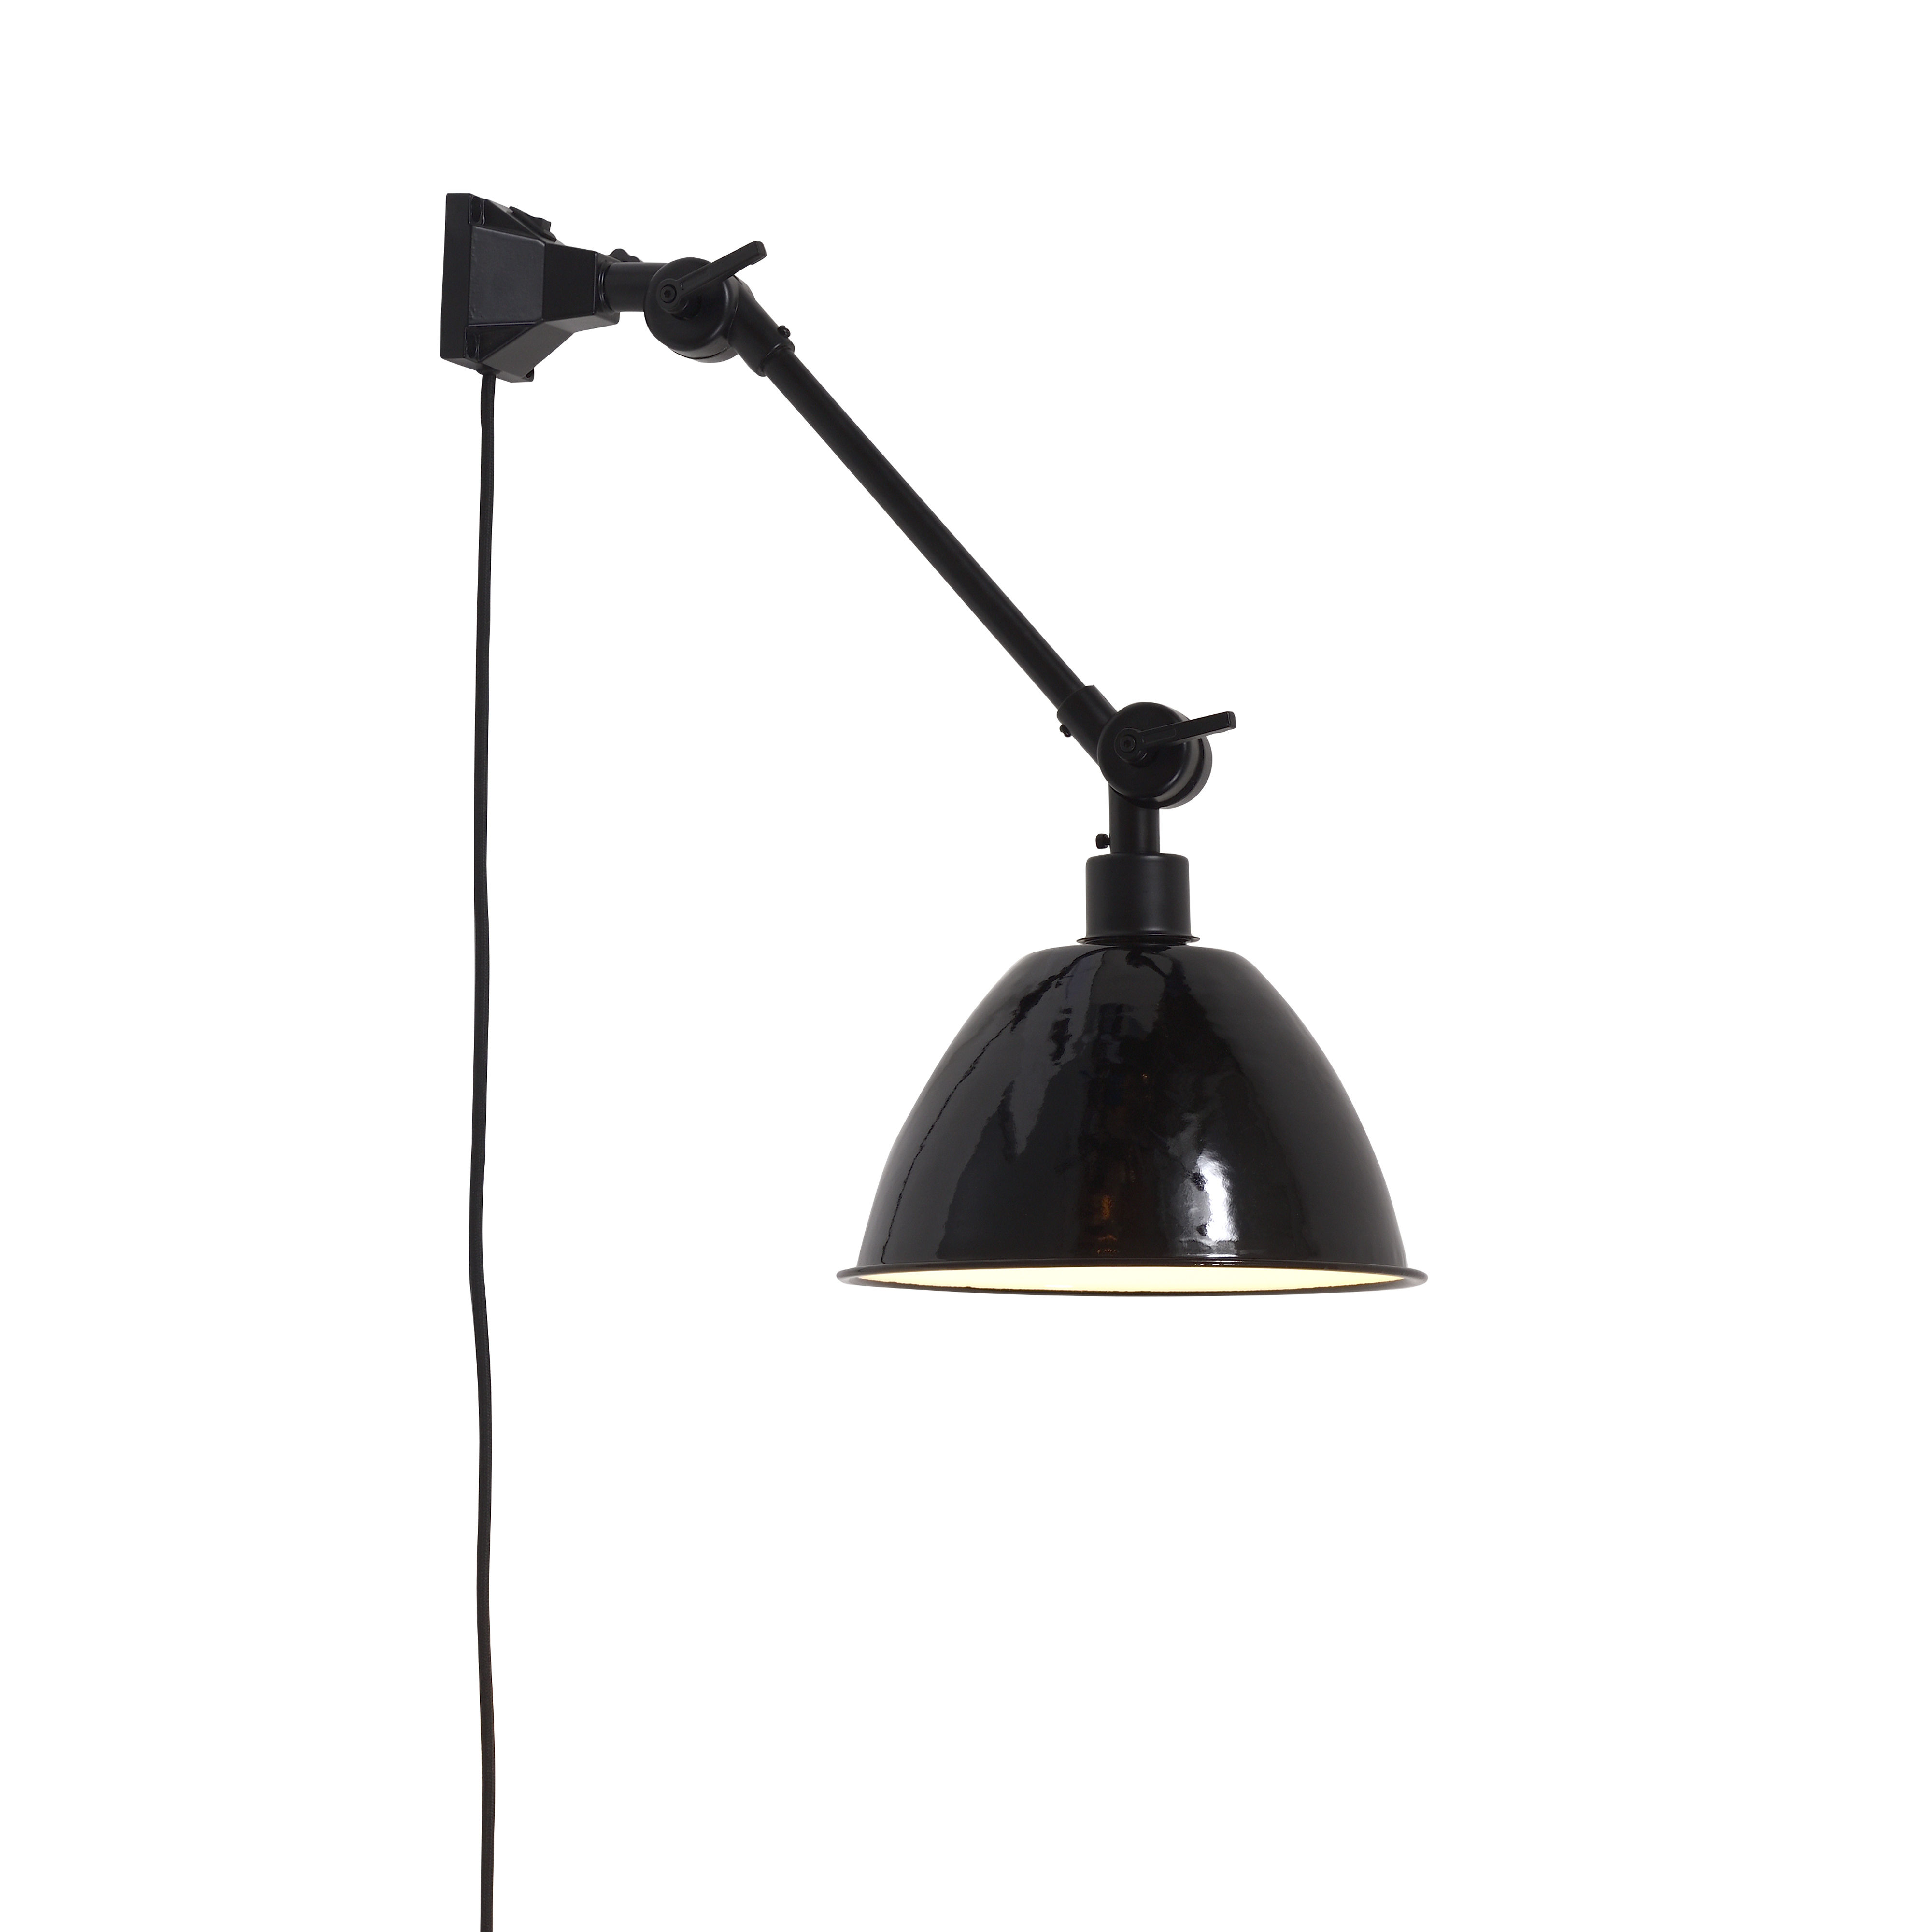 Lighting - Wall Lights - Amsterdam Small Wall light with plug - / Metal lampshade - L 60 cm by It's about Romi - Black - Iron